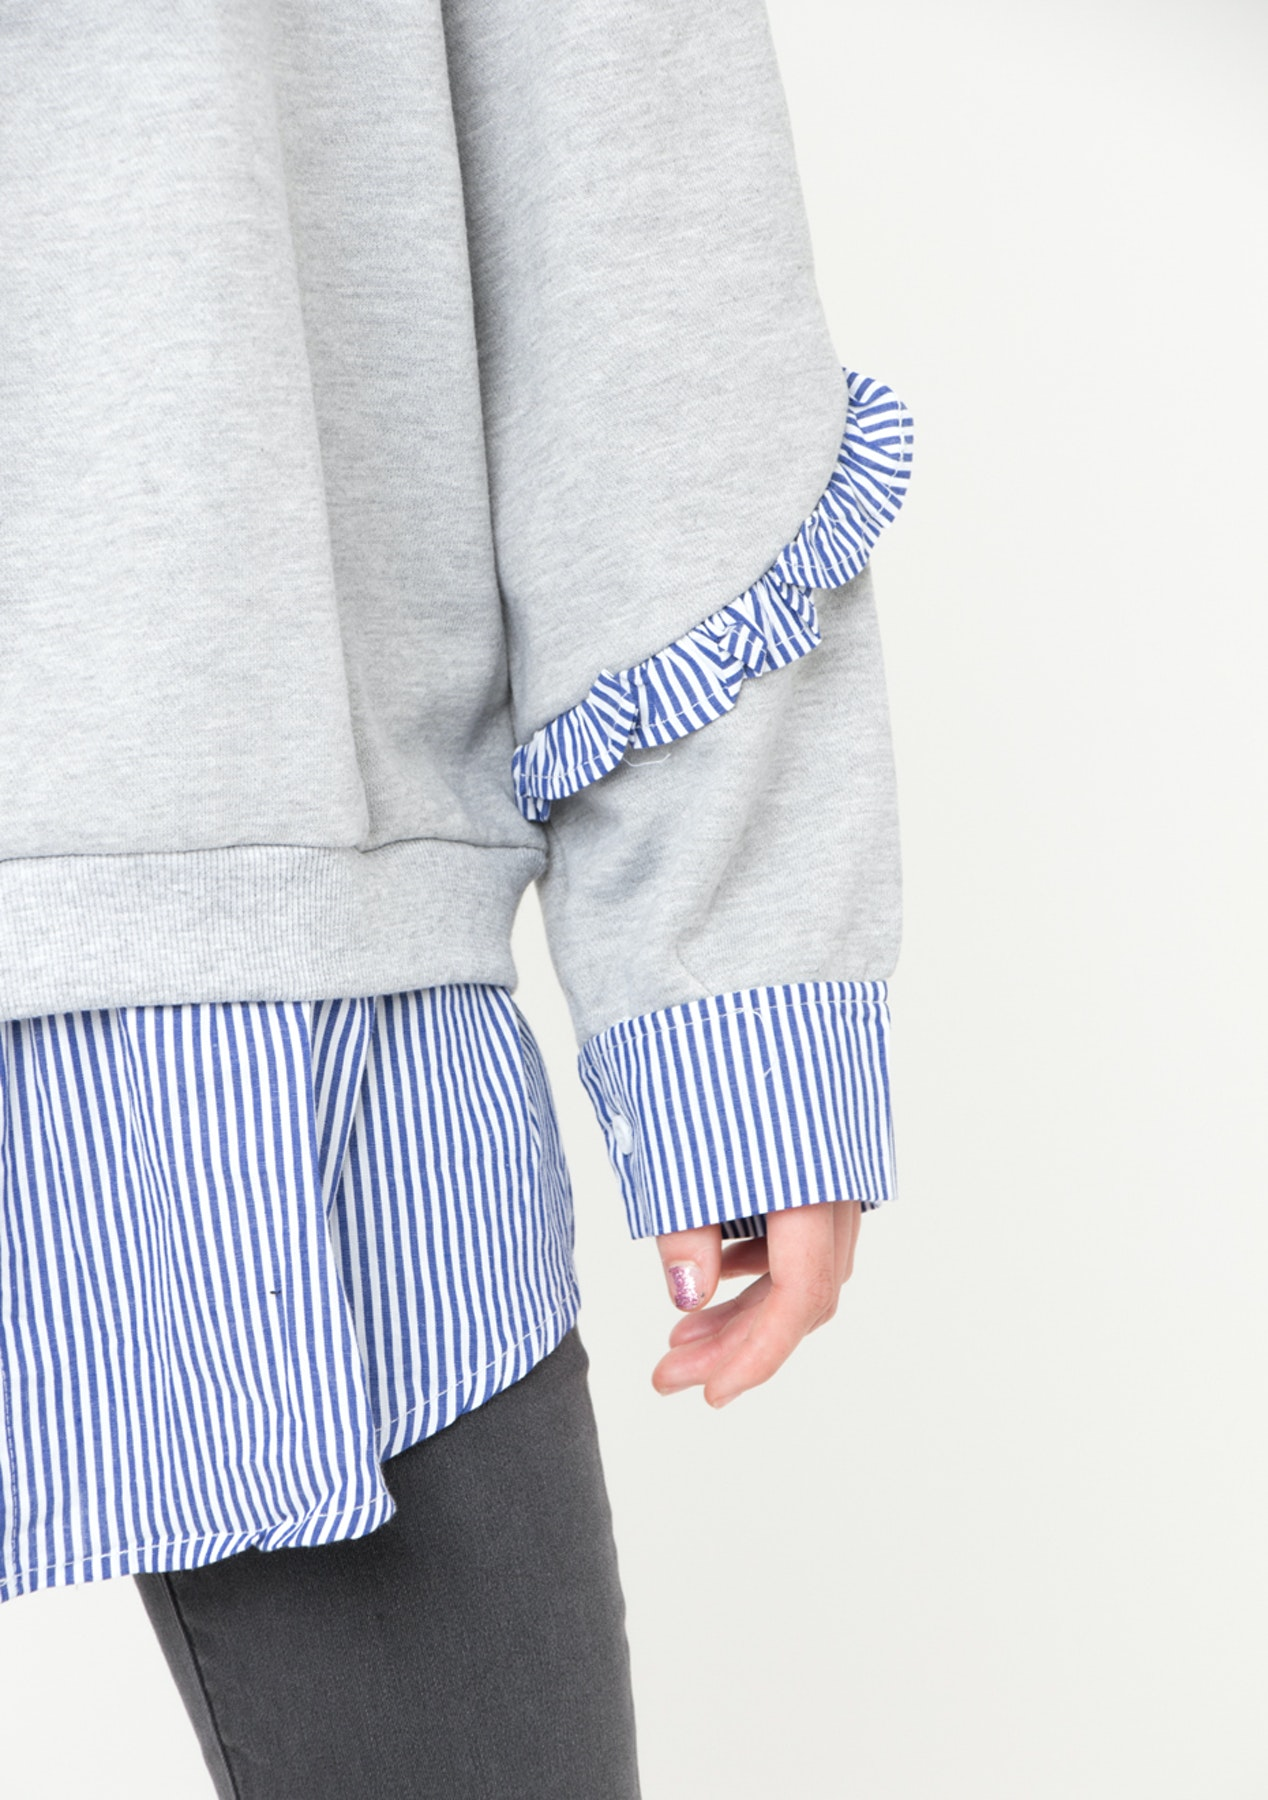 61efb11c585 Lofi Oversized Ruffle Jumper - Marble Grey - Onceit s Gone It s Gone -  Outlet - Onceit